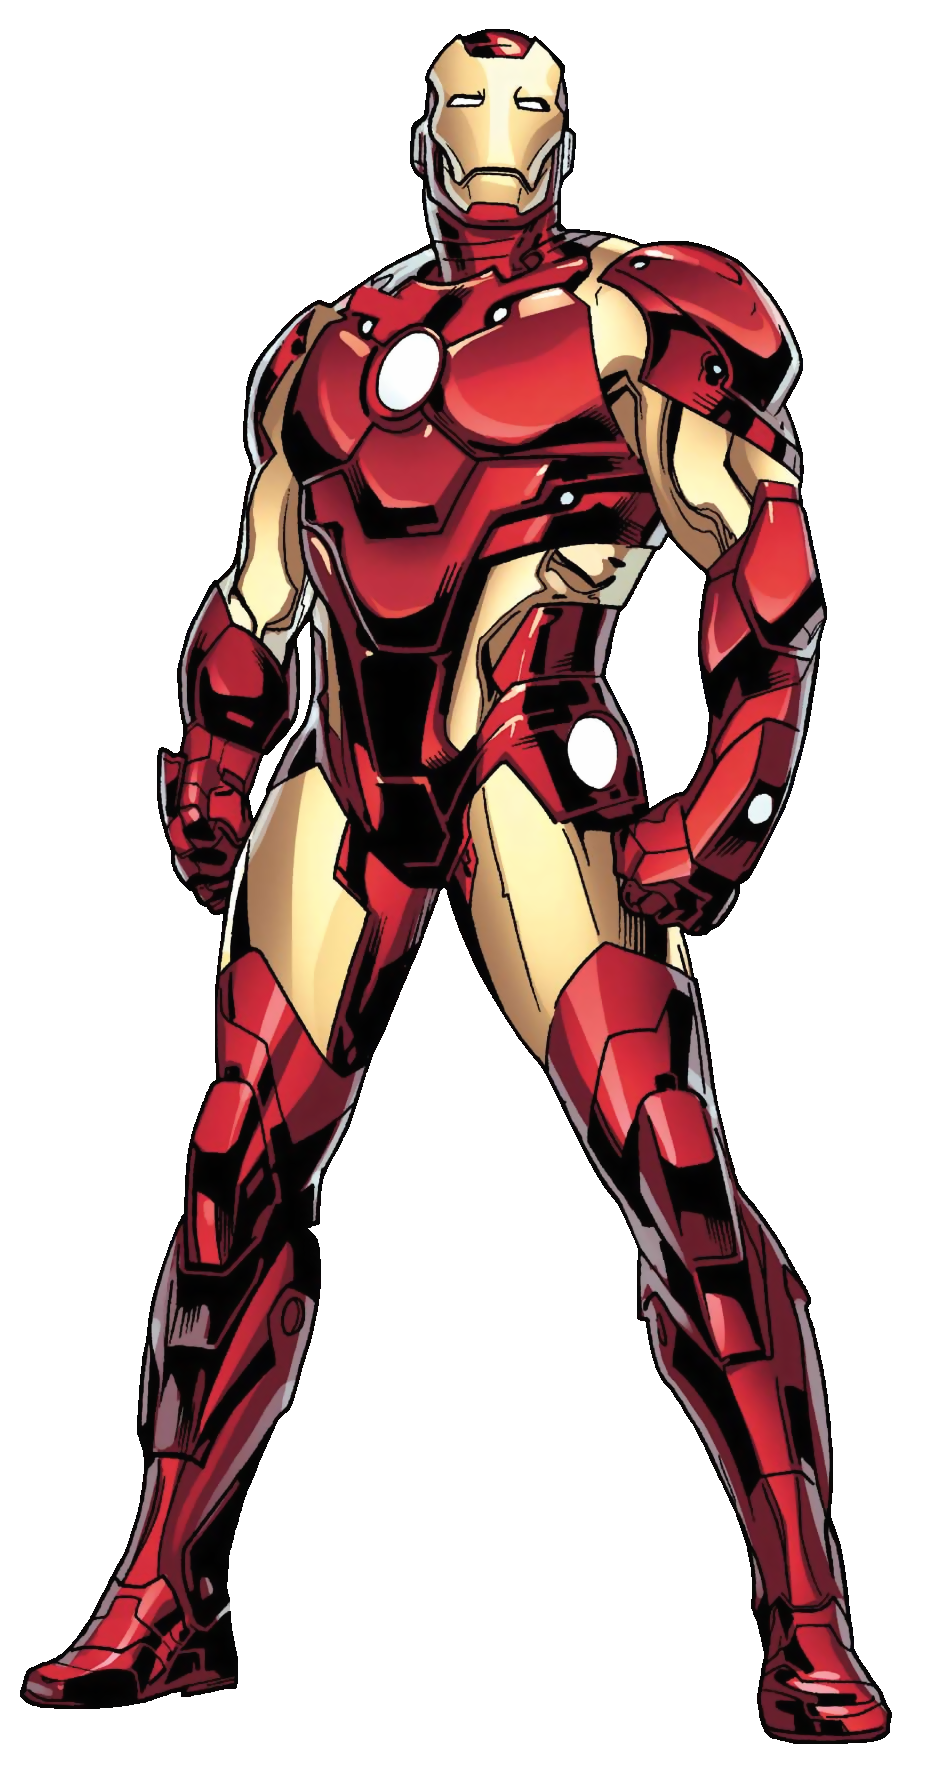 Transparent comic iron man. Marvel comics homem de